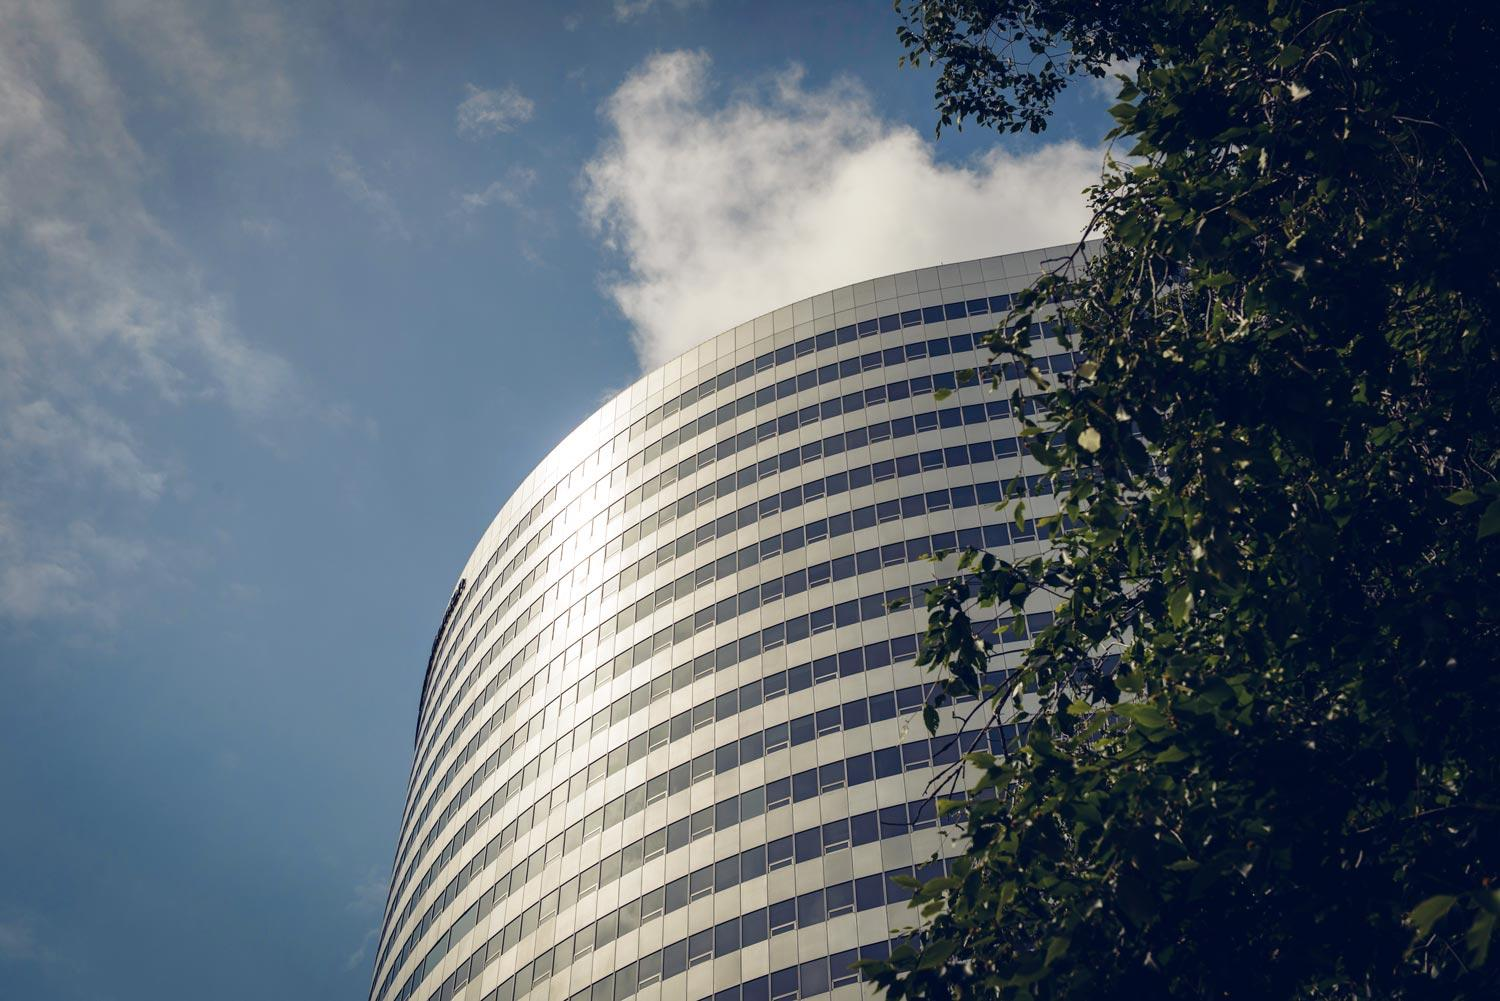 A rounded building